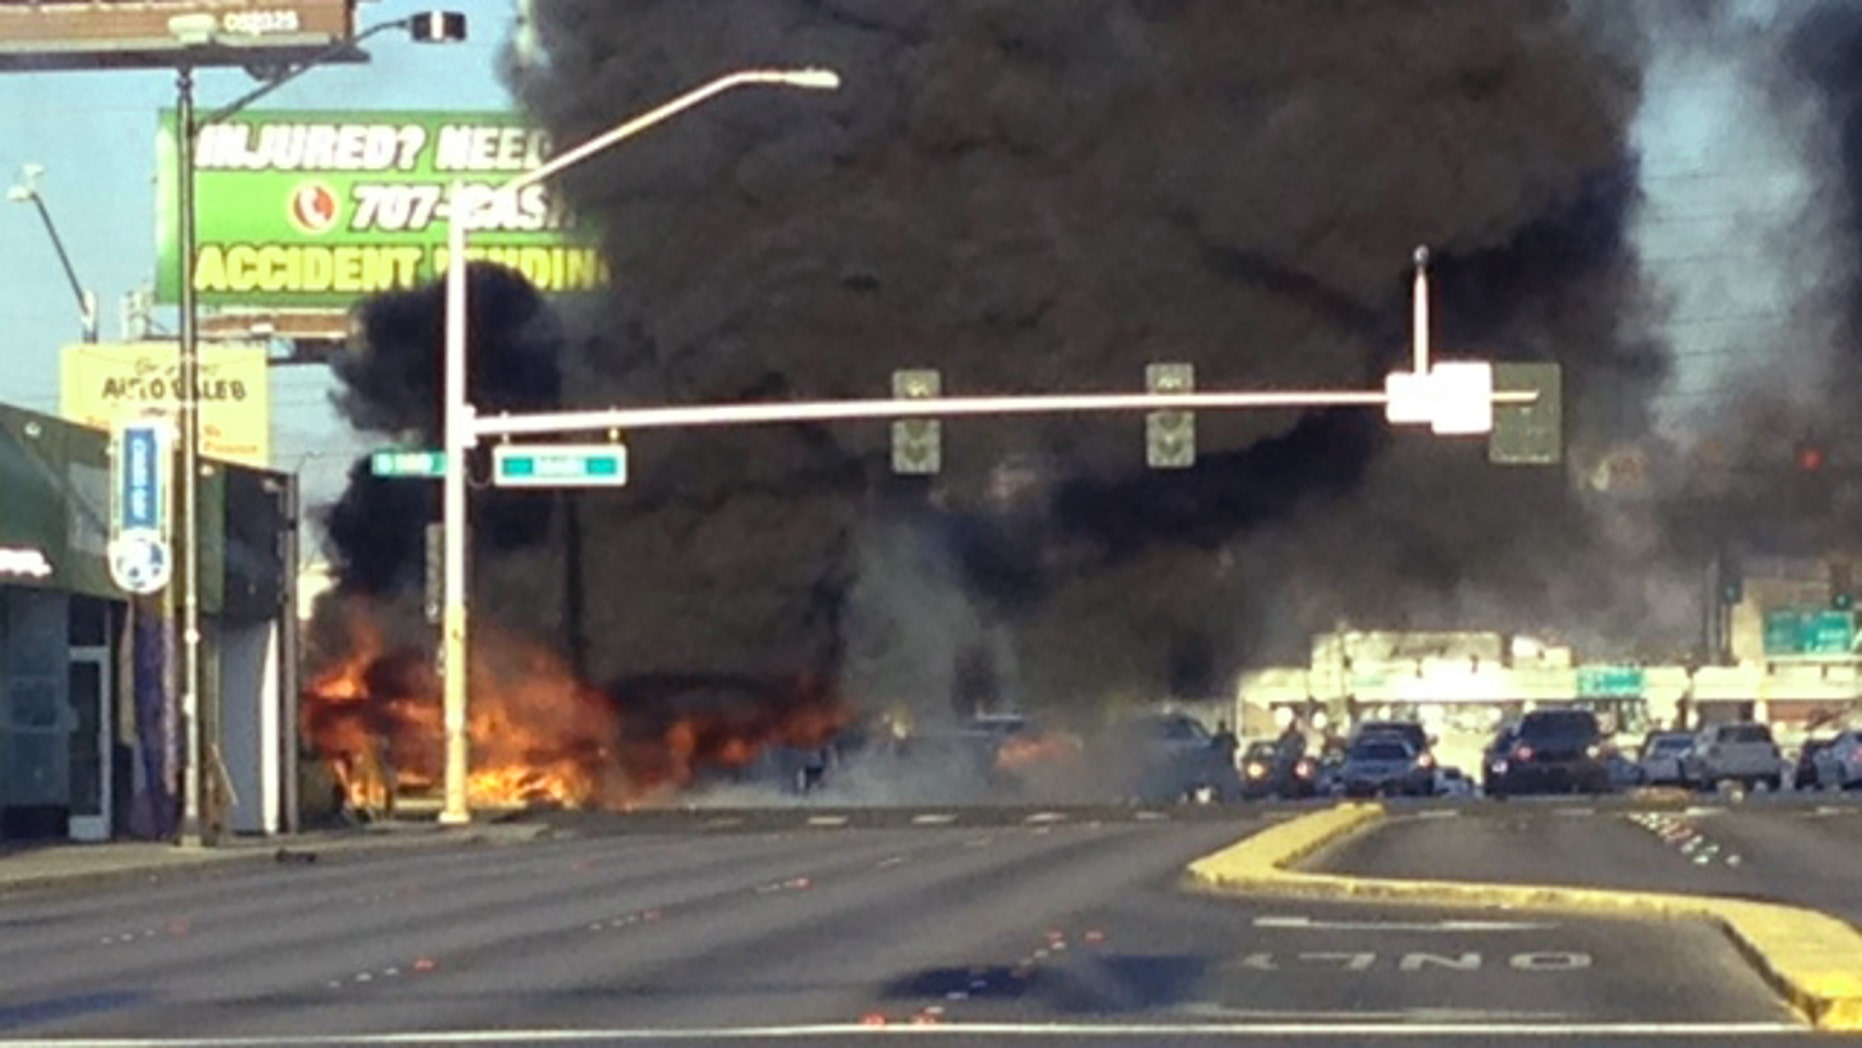 Smoke filled the sky after a fire tore through a mini bus following a collision in Las Vegas, on Saturday, Sept. 5, 2015. Fire officials say a burning mini bus was found lying on its side on the sidewalk and a car was in the middle of the intersection.  According to investigators, two people were unable to flee the bus and died at the scene. Four other passengers were taken to the hospital for burns. There were no other injuries.